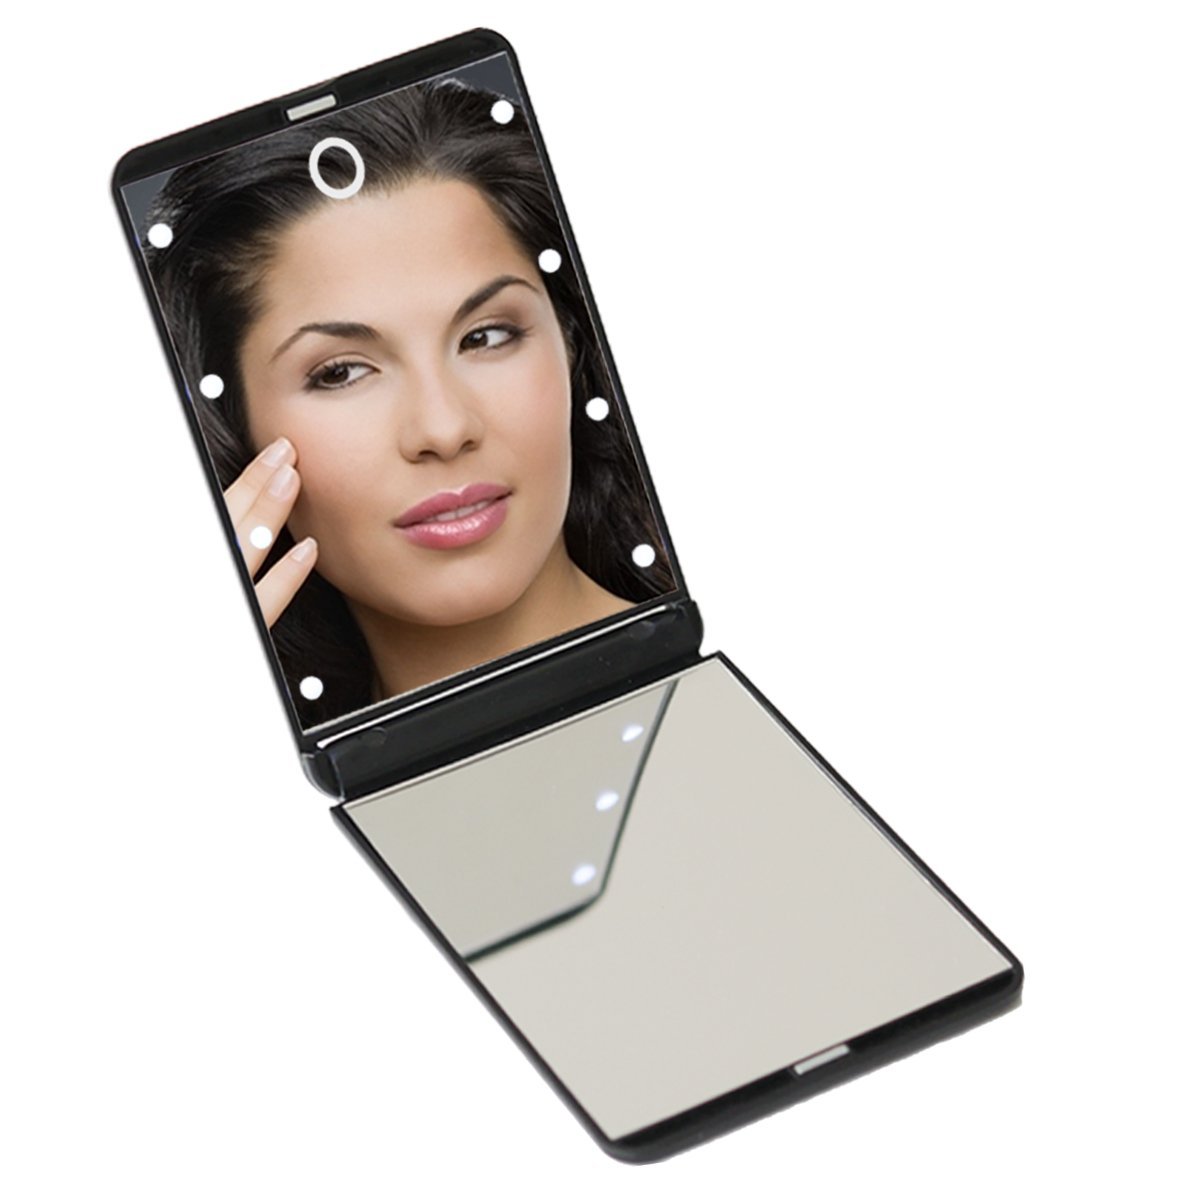 8Pcs Led Lighted Makeup Mirror Aopet 1X&2X Double Sided 315°Adjustable Illuminated Vanity Mirror Folding Portable Compact Travel Cosmetic Mirror with Touch Screen Power Switch for Girls Women Men